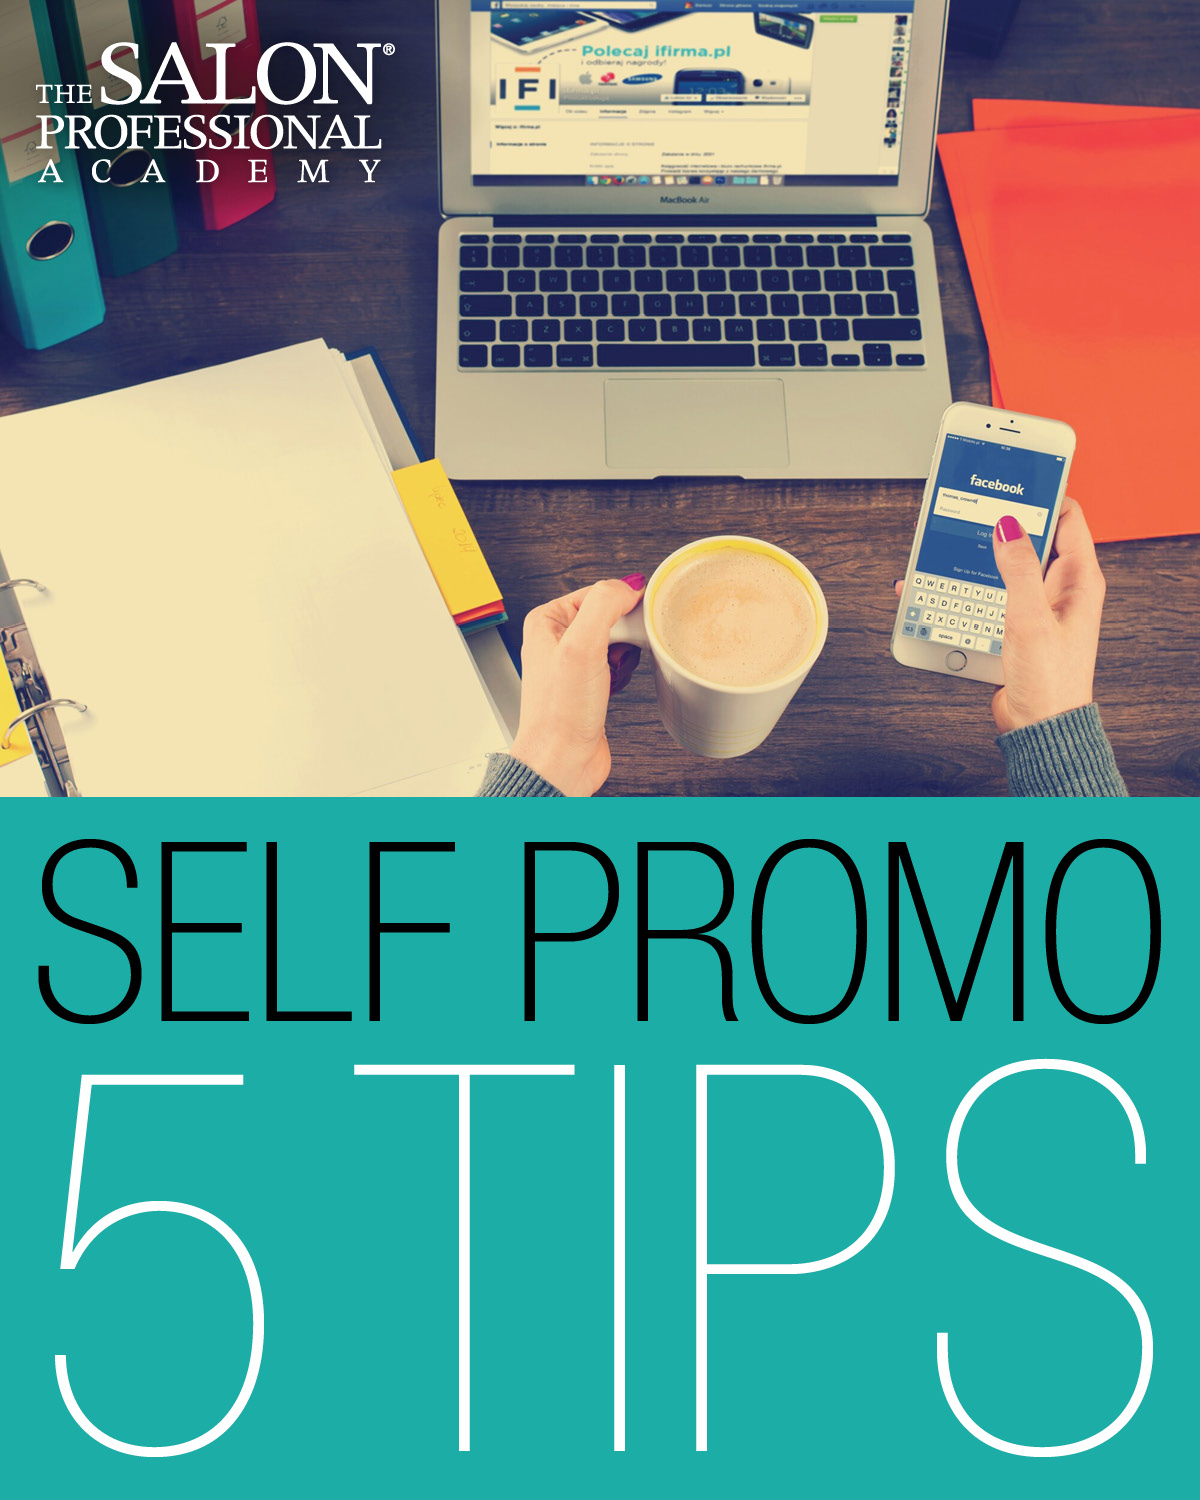 Self Promotional Marketing Tips For TSPA COlorado Beauty School Students